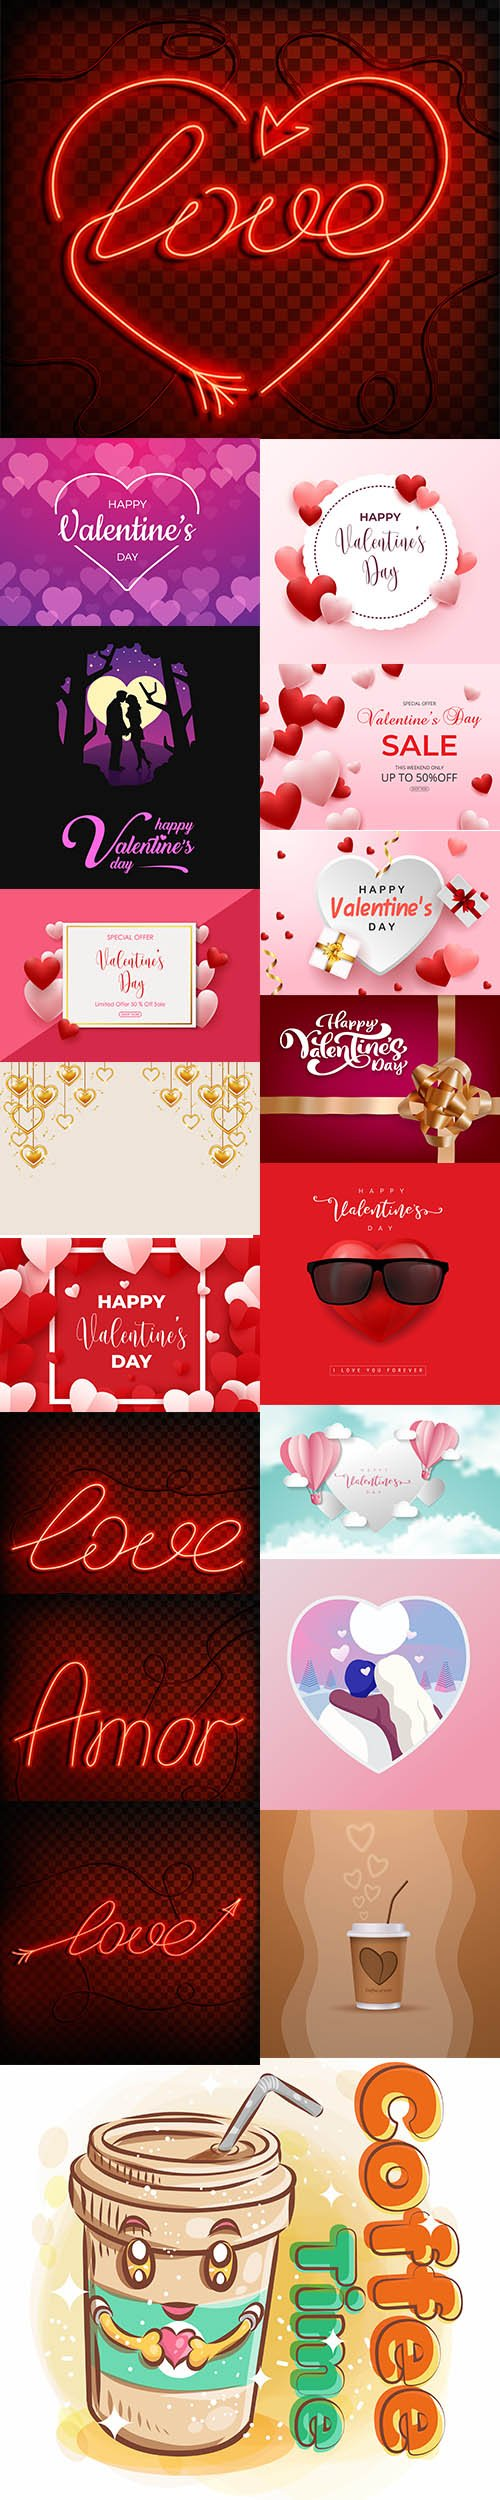 Set of Romantic Valentines Day Illustrations Vol 8